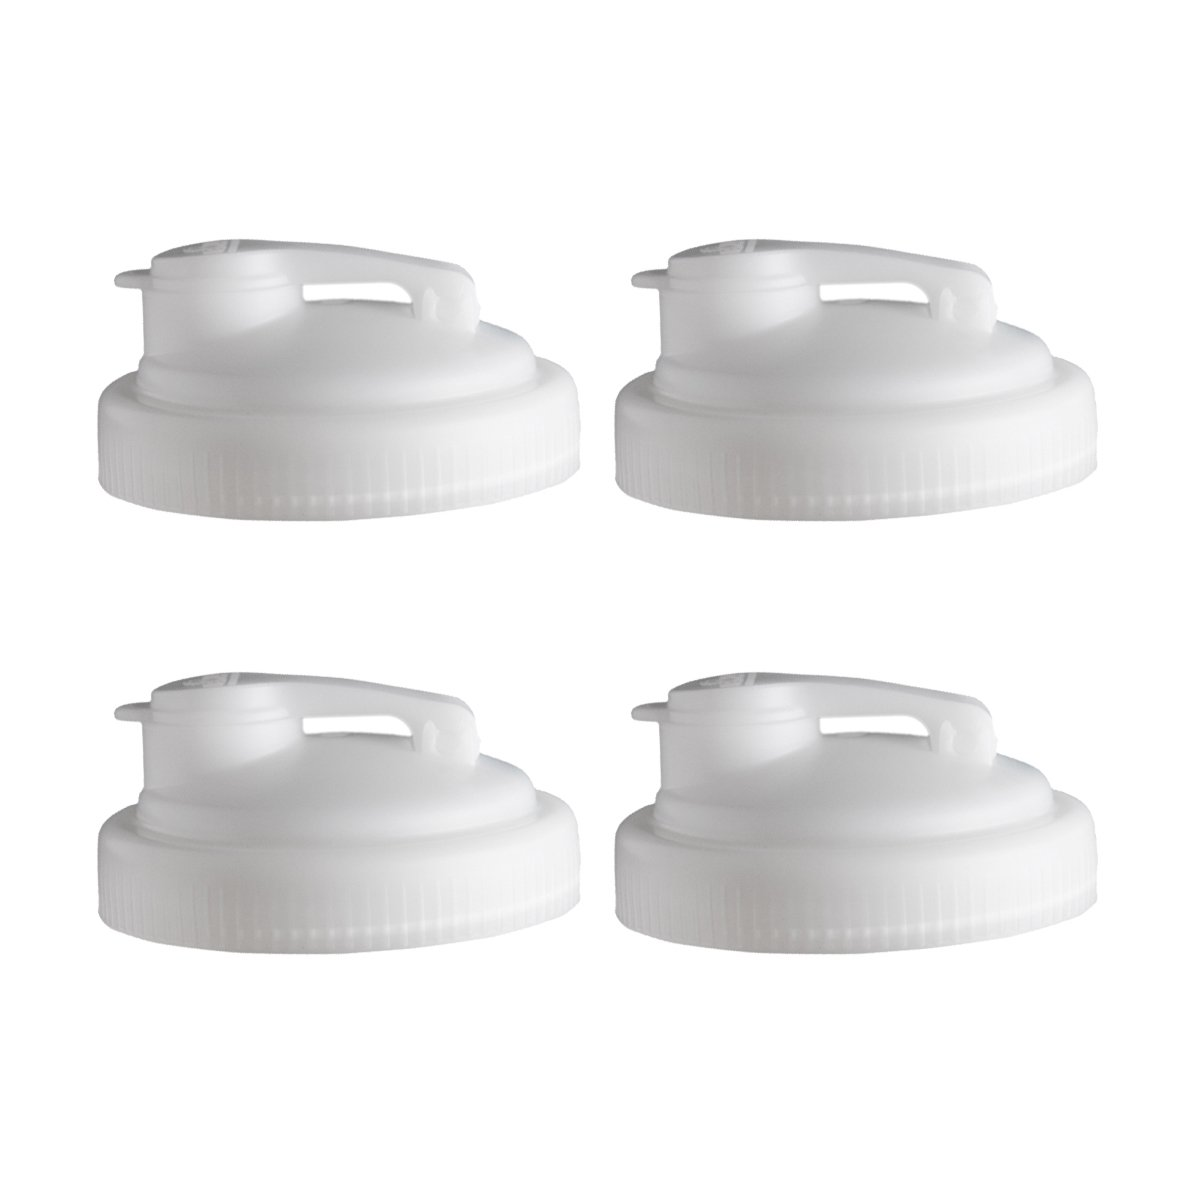 reCAP P-W-NTRL4 Mason Pour, Wide Mouth, Canning Jar Lids, Natural-4 Pack